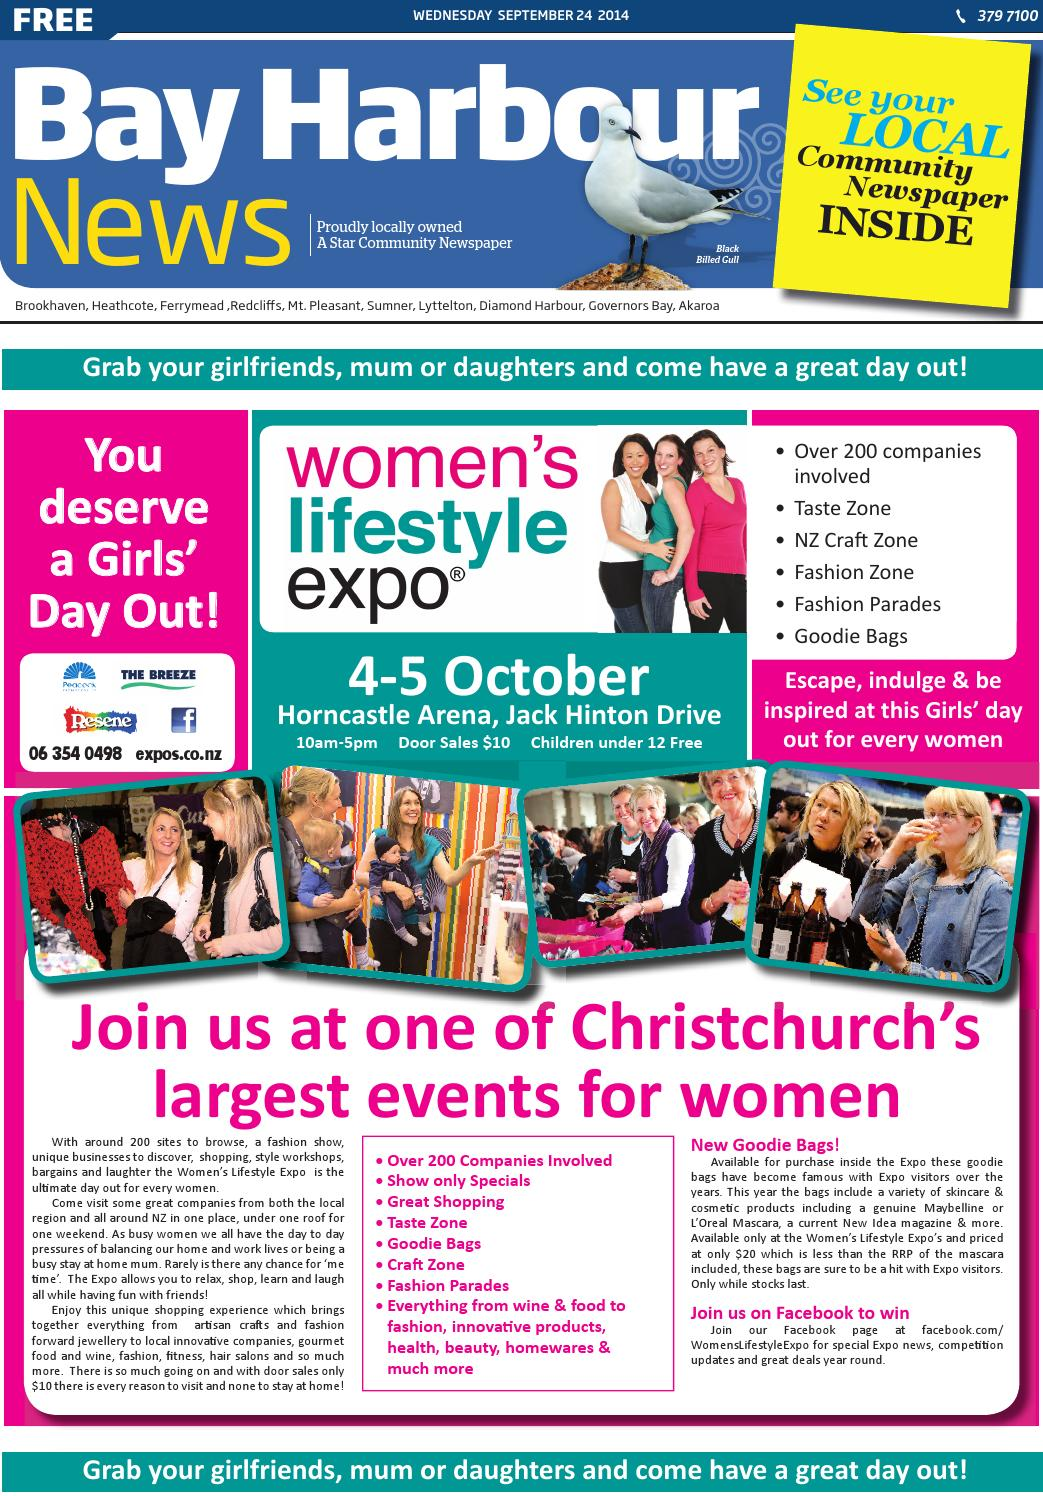 Bay Harbour News 24-09-14 by Local Newspapers - issuu